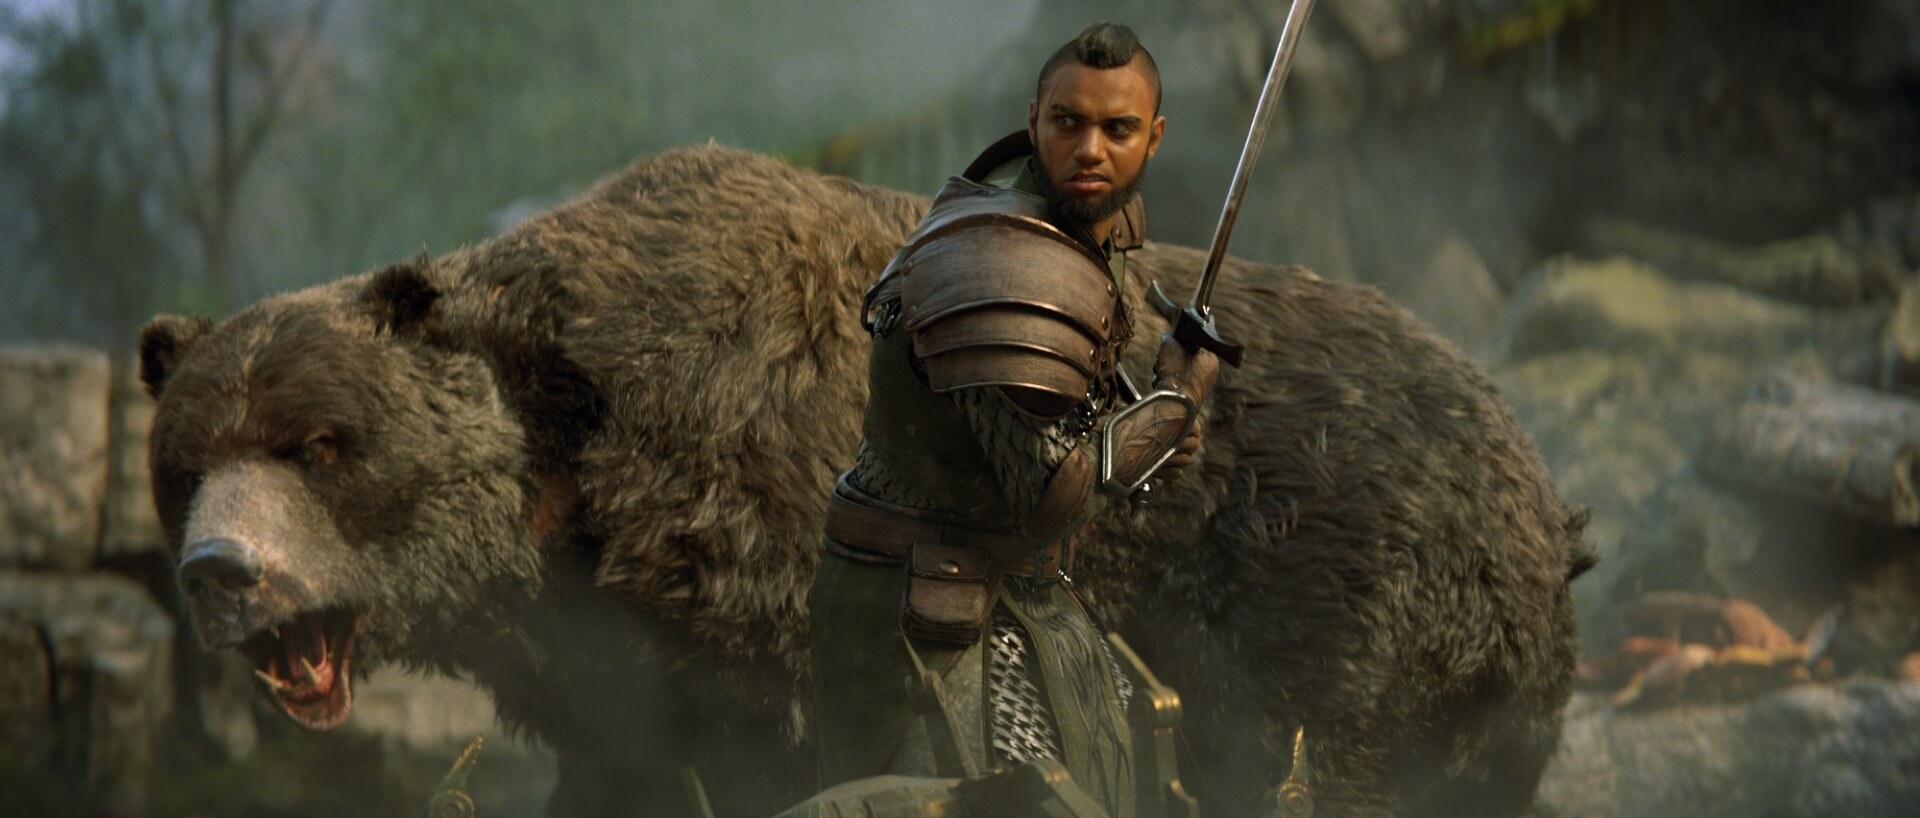 Bears? See, this is why wizard colleges in Tamriel should give instructors assault rifles.